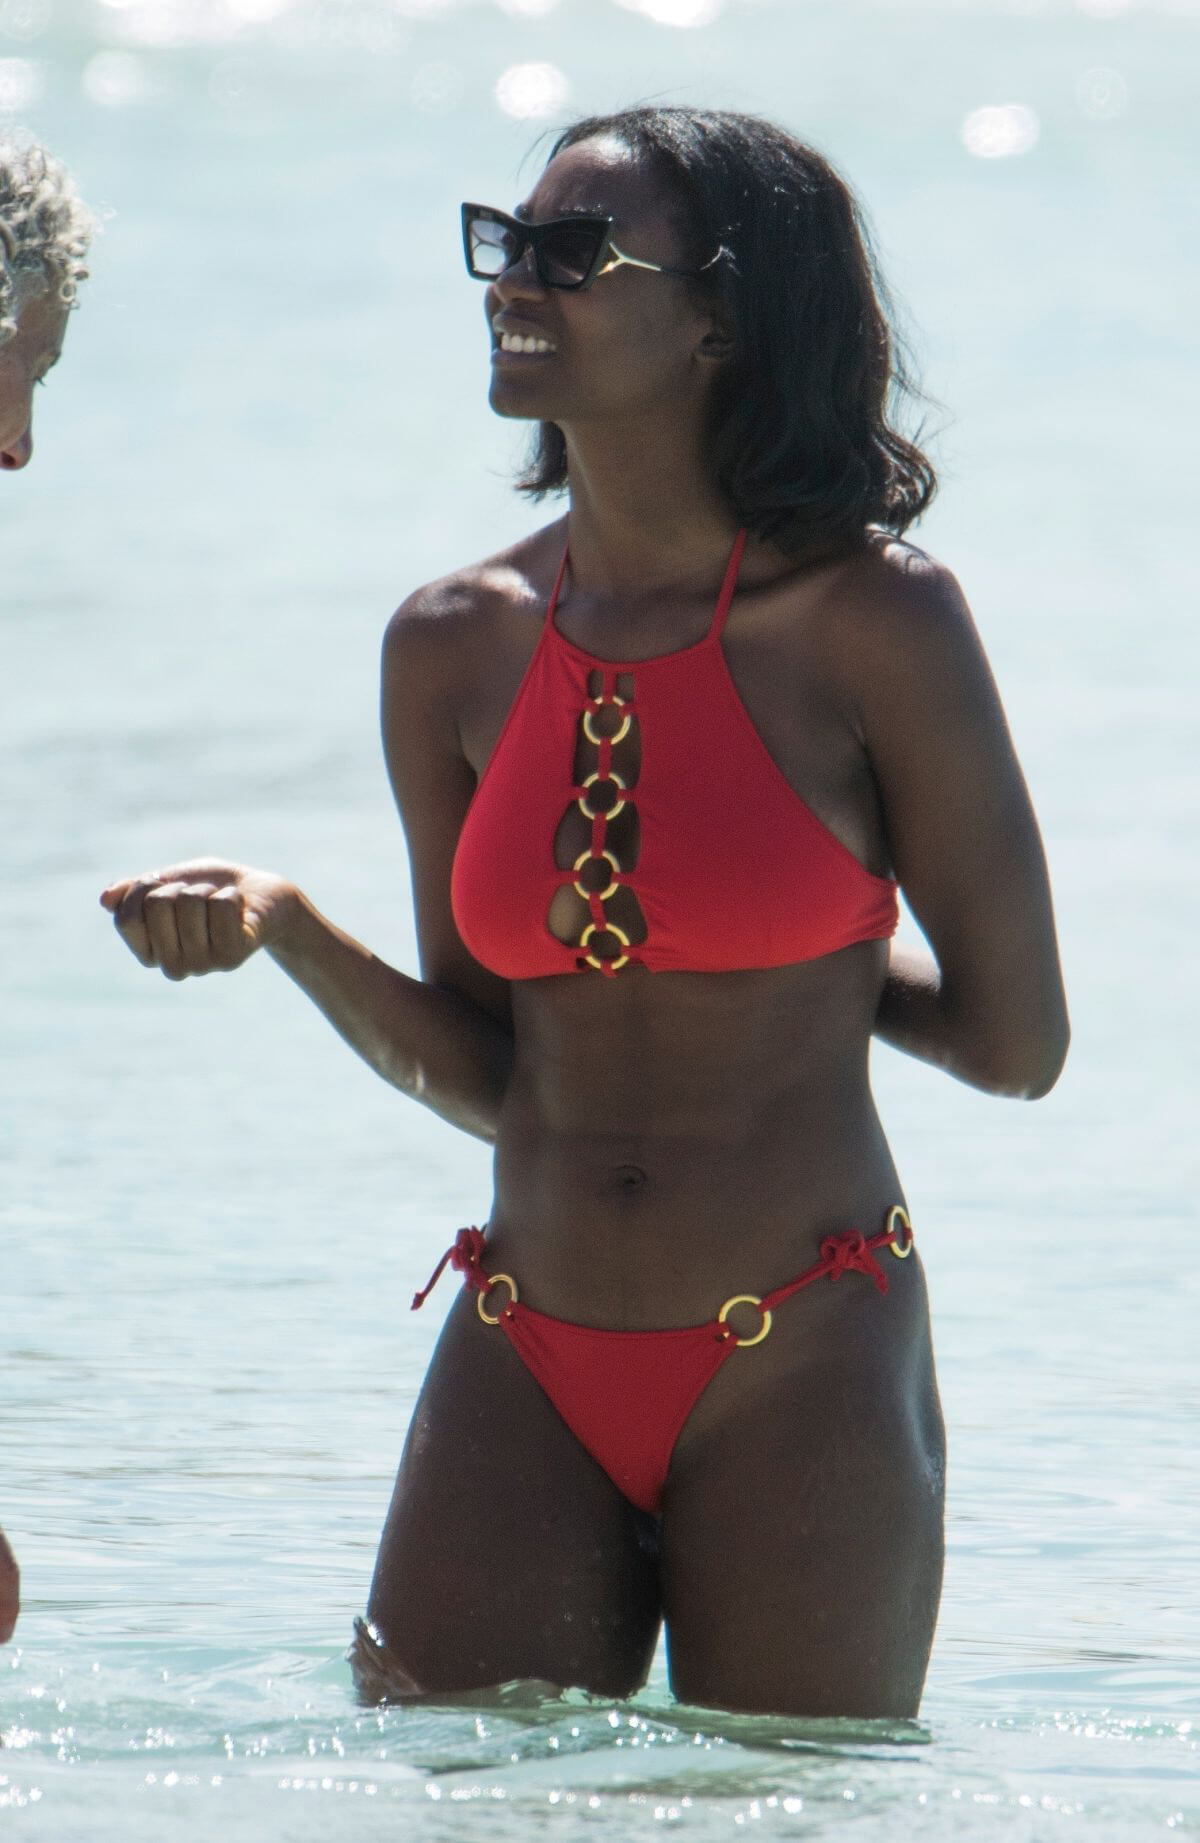 Cleavage Mouna Traore nude (99 foto and video), Topless, Bikini, Instagram, legs 2018